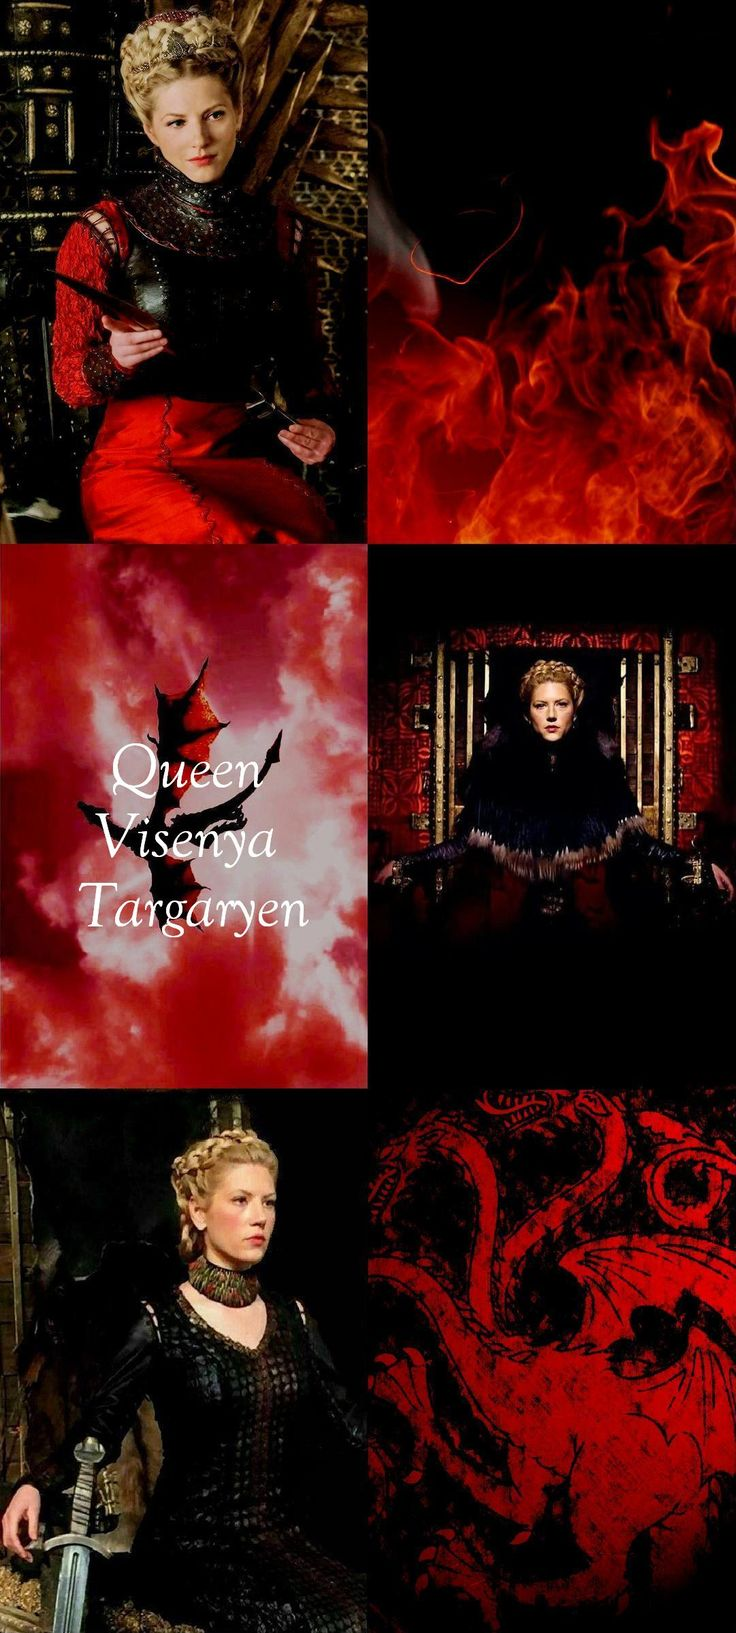 Queen Visenya Targaryen was the older of King Aegon I Targaryen's sisters. She was also one of his two wives.